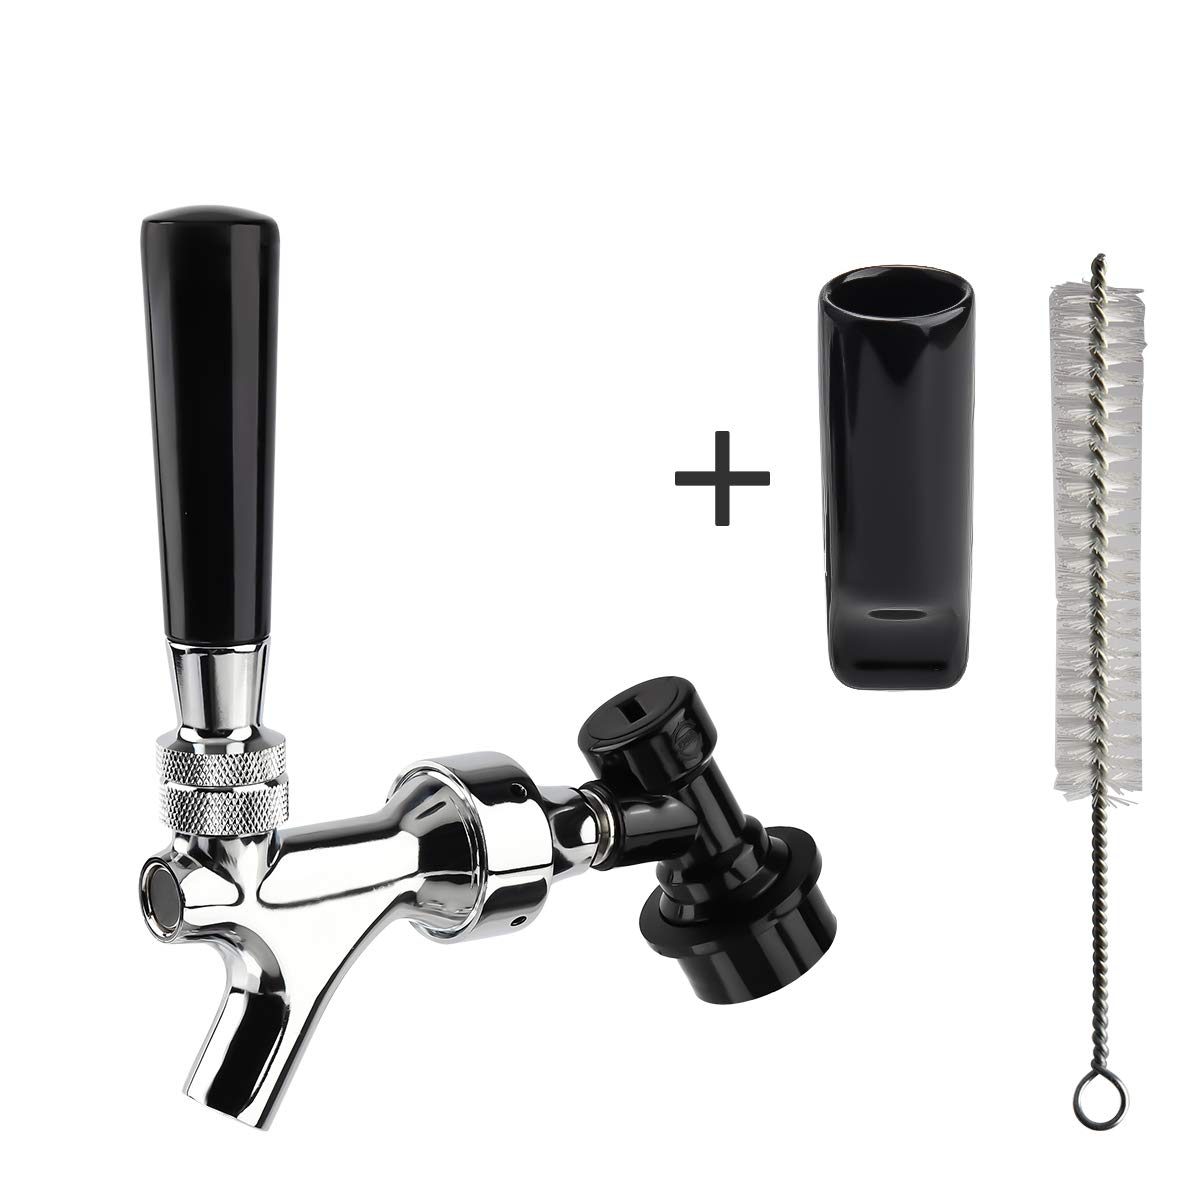 Keg Tap Faucet, Kegerator Faucet, Chrome Plated Brass Draft Beer Tap, With Black Handle & Tap Brush & Faucet Cap & Ball Lock & Quick Disconnect Adapter,Stainless Steel Shaft And Lever